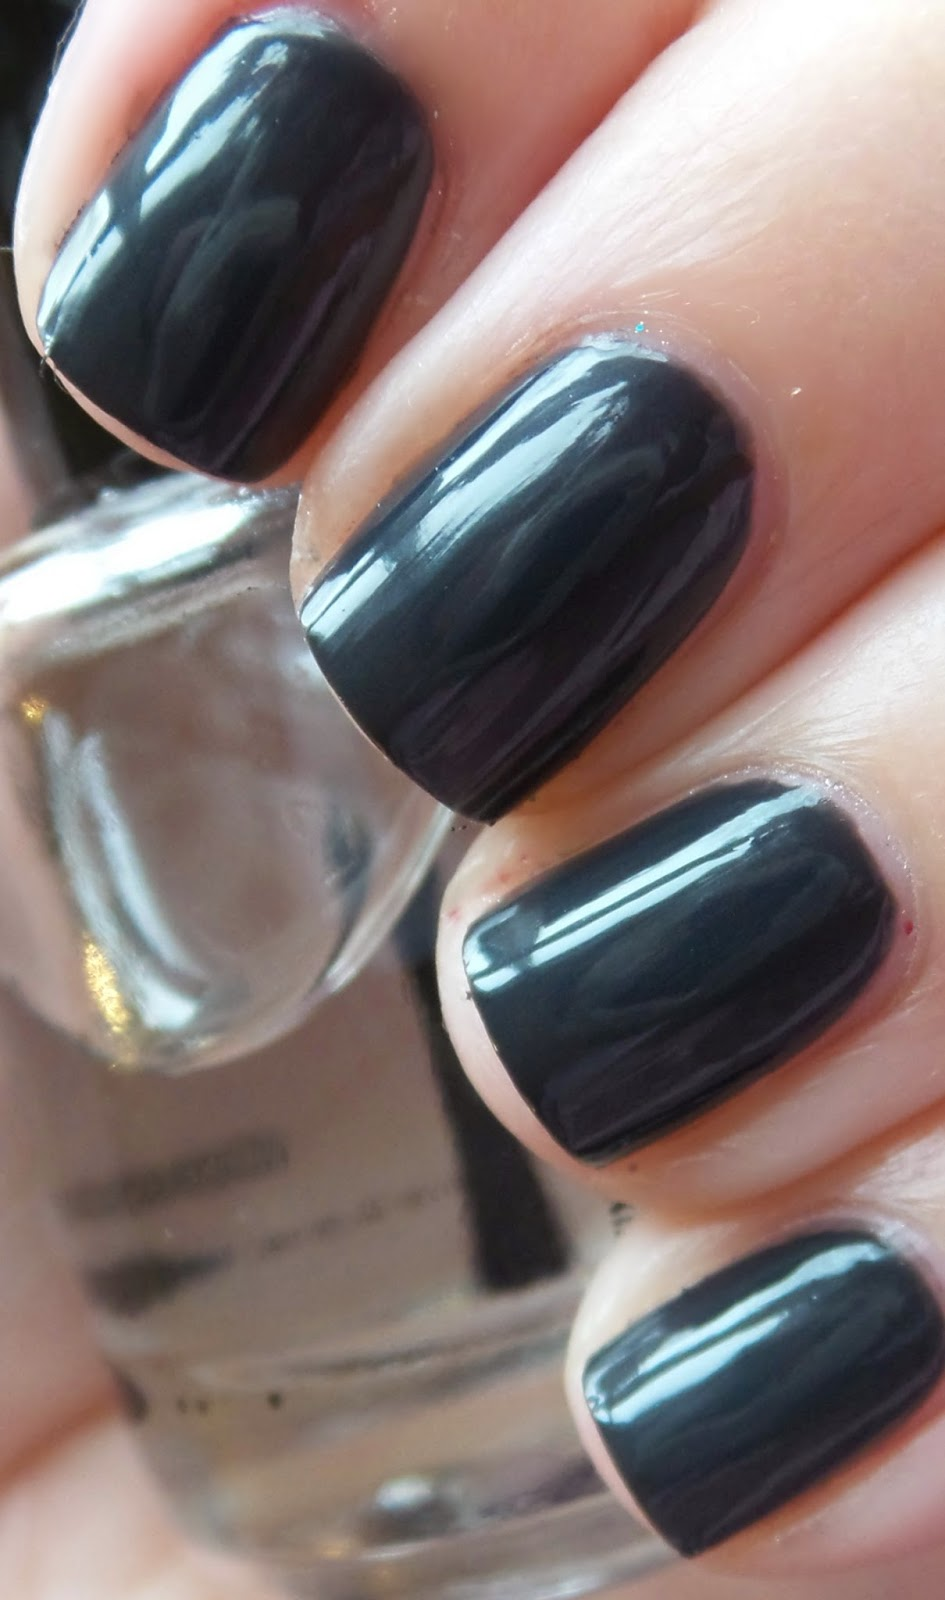 Obsessive Cosmetic Hoarders Unite!: NEW! OPI Fifty Shades of Grey ...